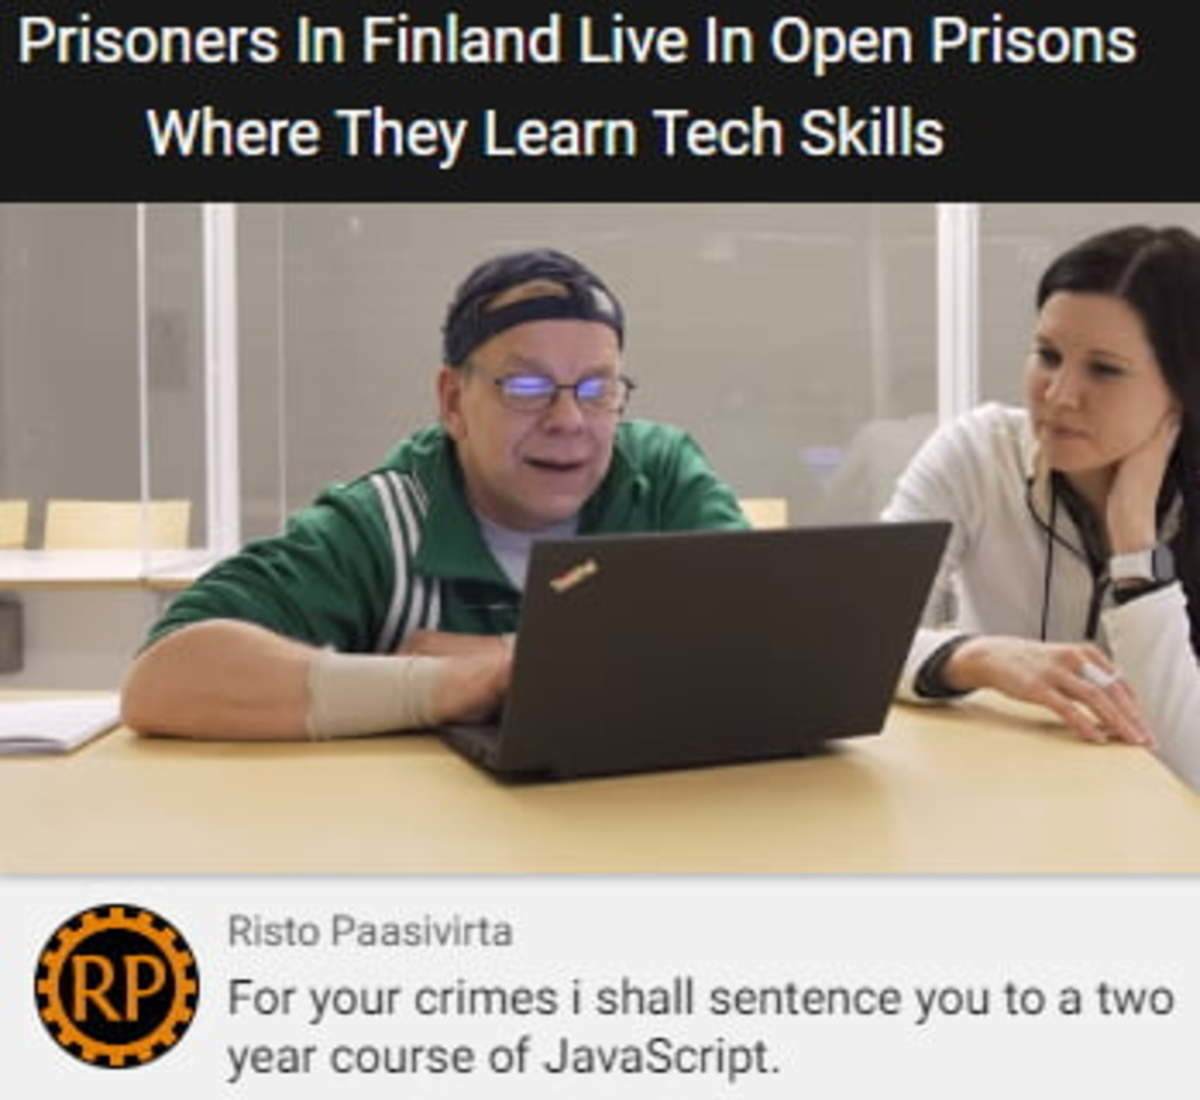 Finland Prisons. .. Eat at high end restaurant without paying as homeless man for free education Big brain plays